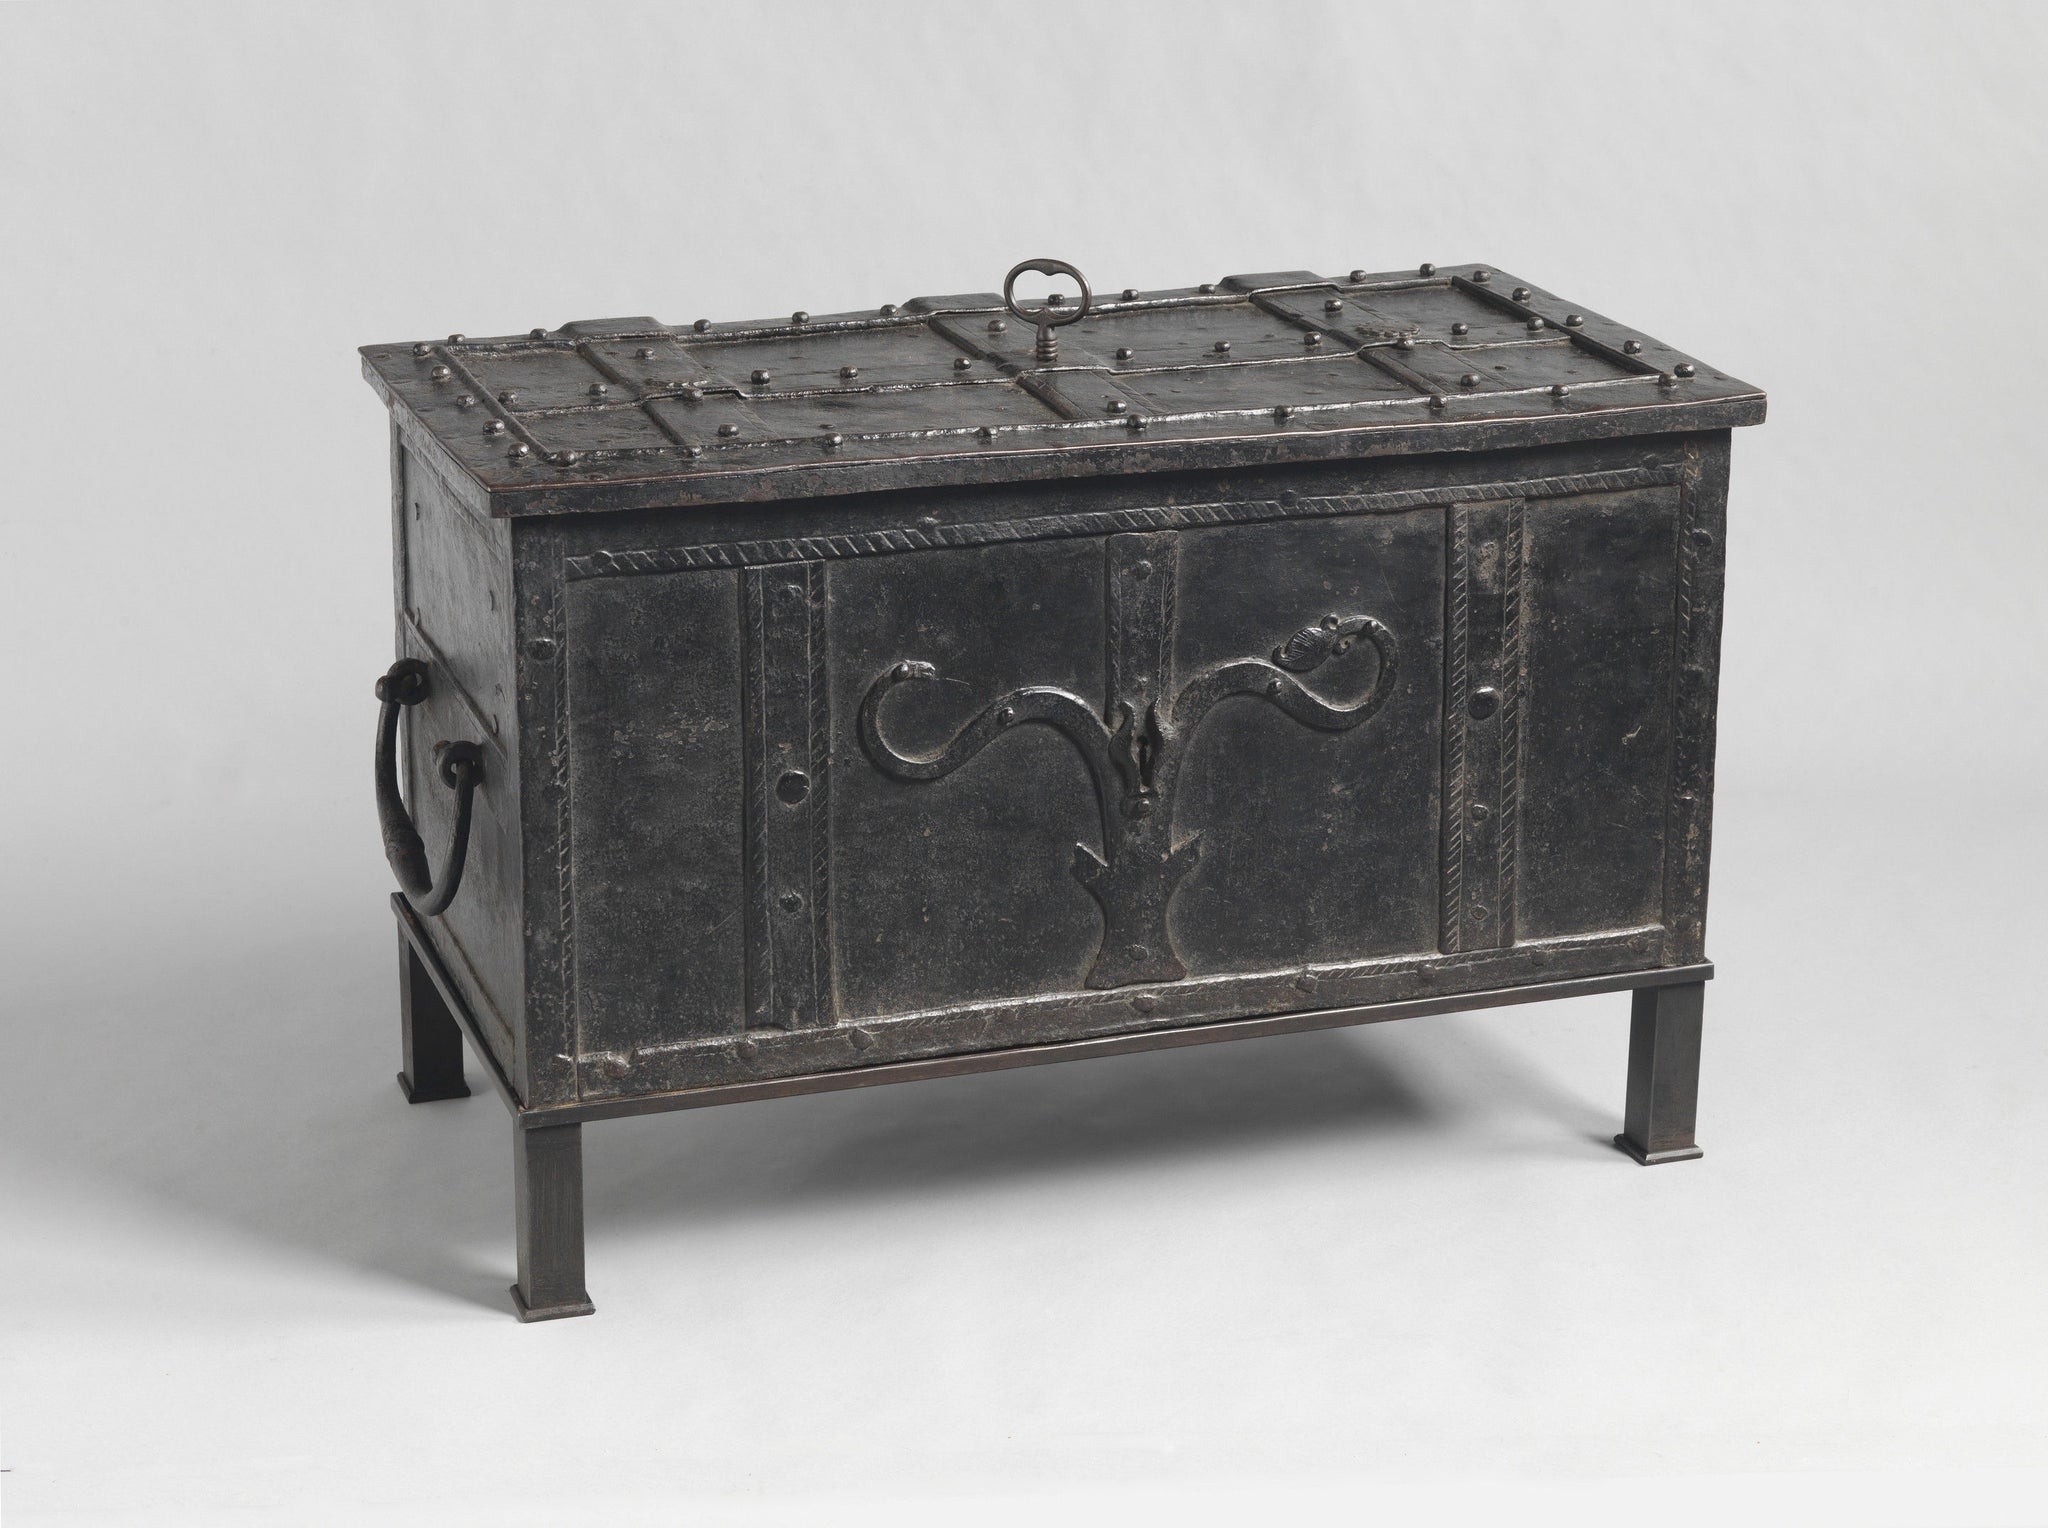 Exceptional Early Strongbox or 'Armada Chest'